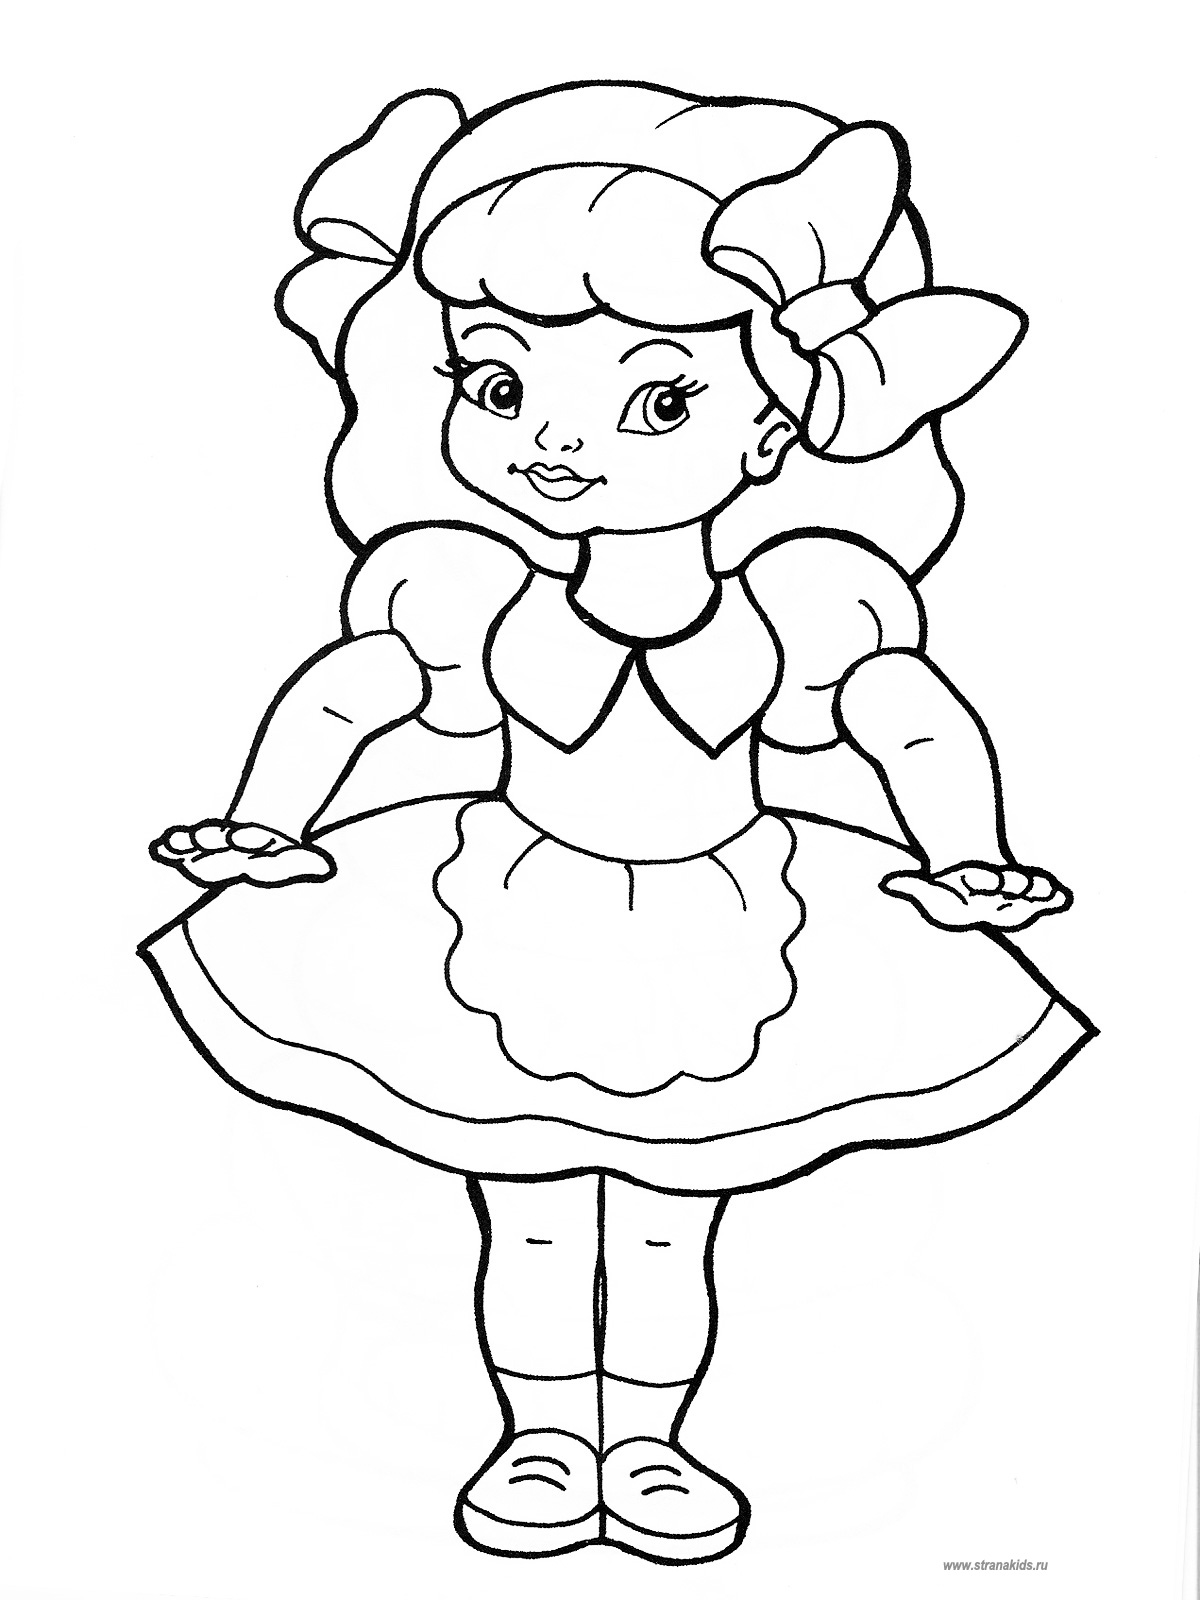 http://stranakids.ru/wp-content/uploads/2012/06/coloring-doll32.jpg